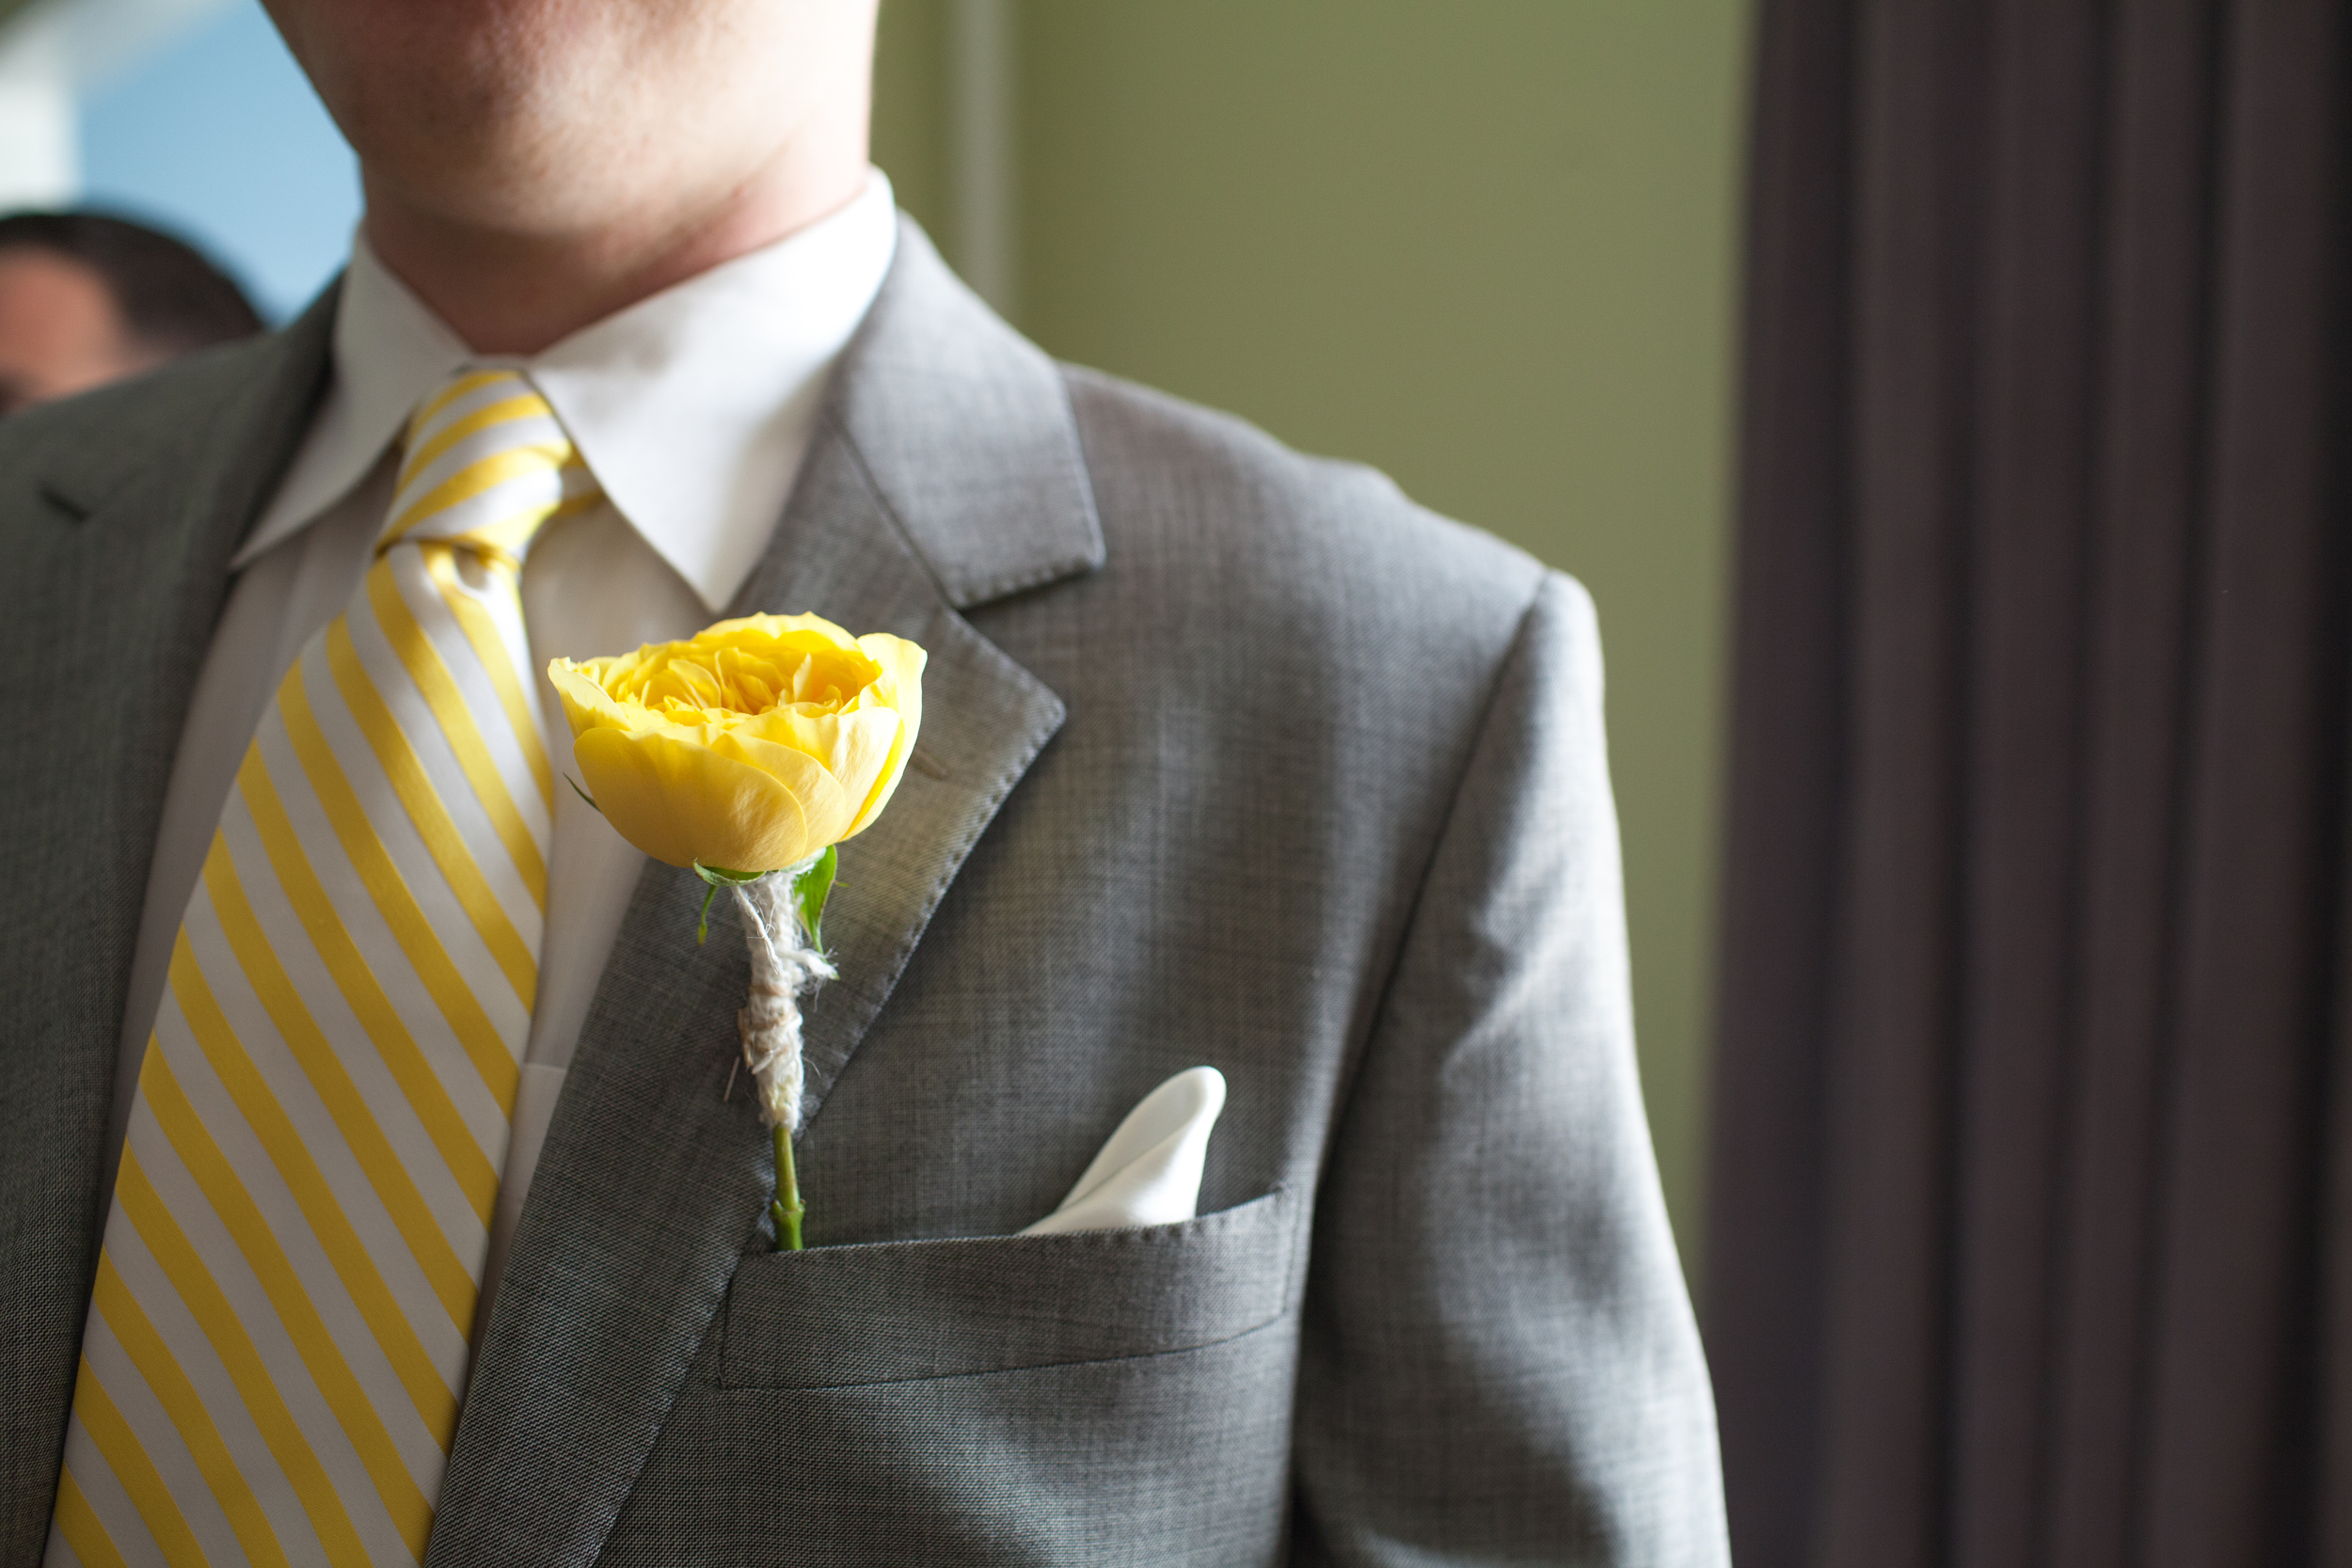 Lace and Lilies, Yellow Garden Rose Boutonniere